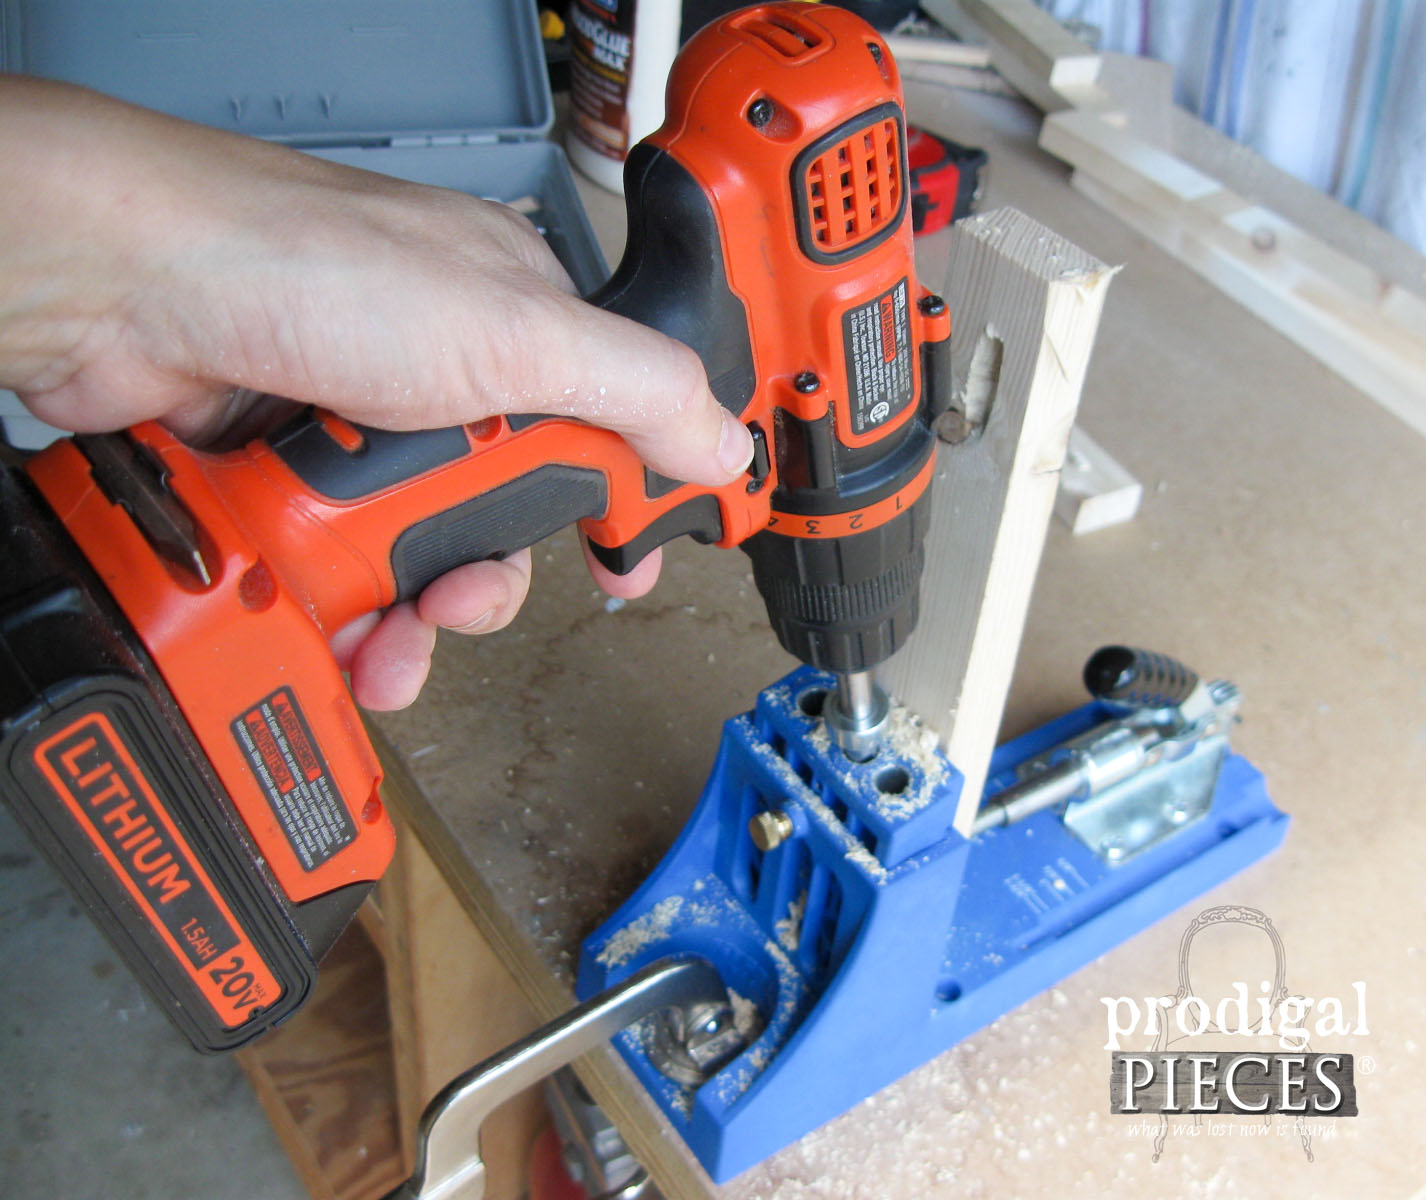 Using Kreg Jig to Create Pocket Screw Holes | Prodigal Pieces | www.prodigalpieces.com